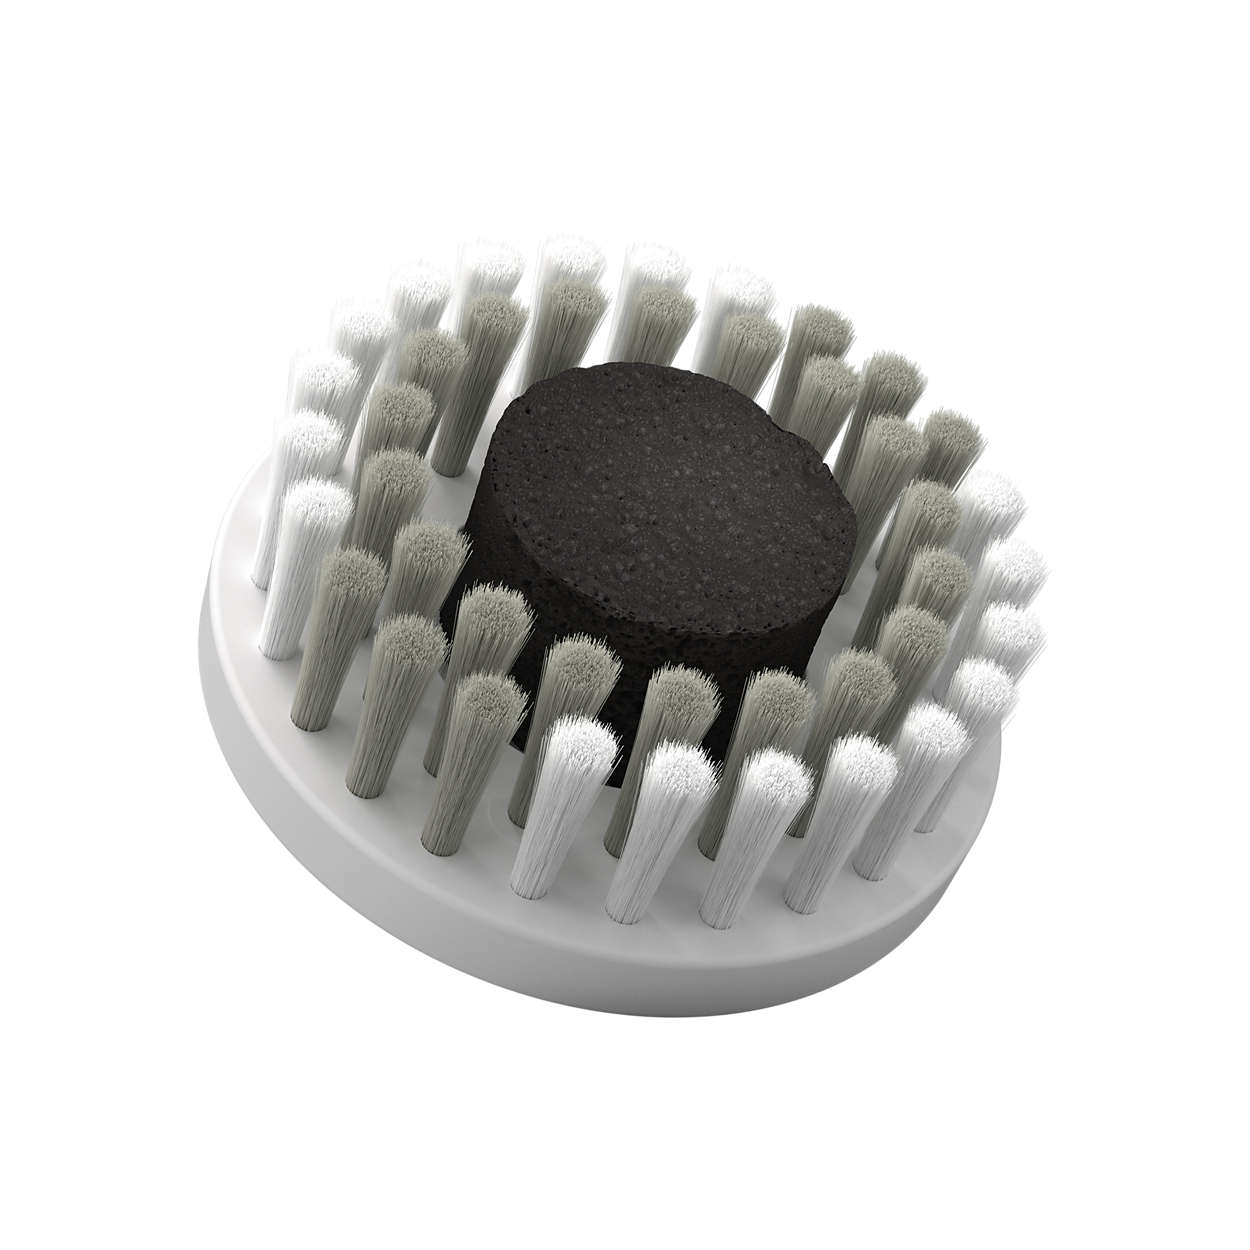 Anti-pollution cleansing brush